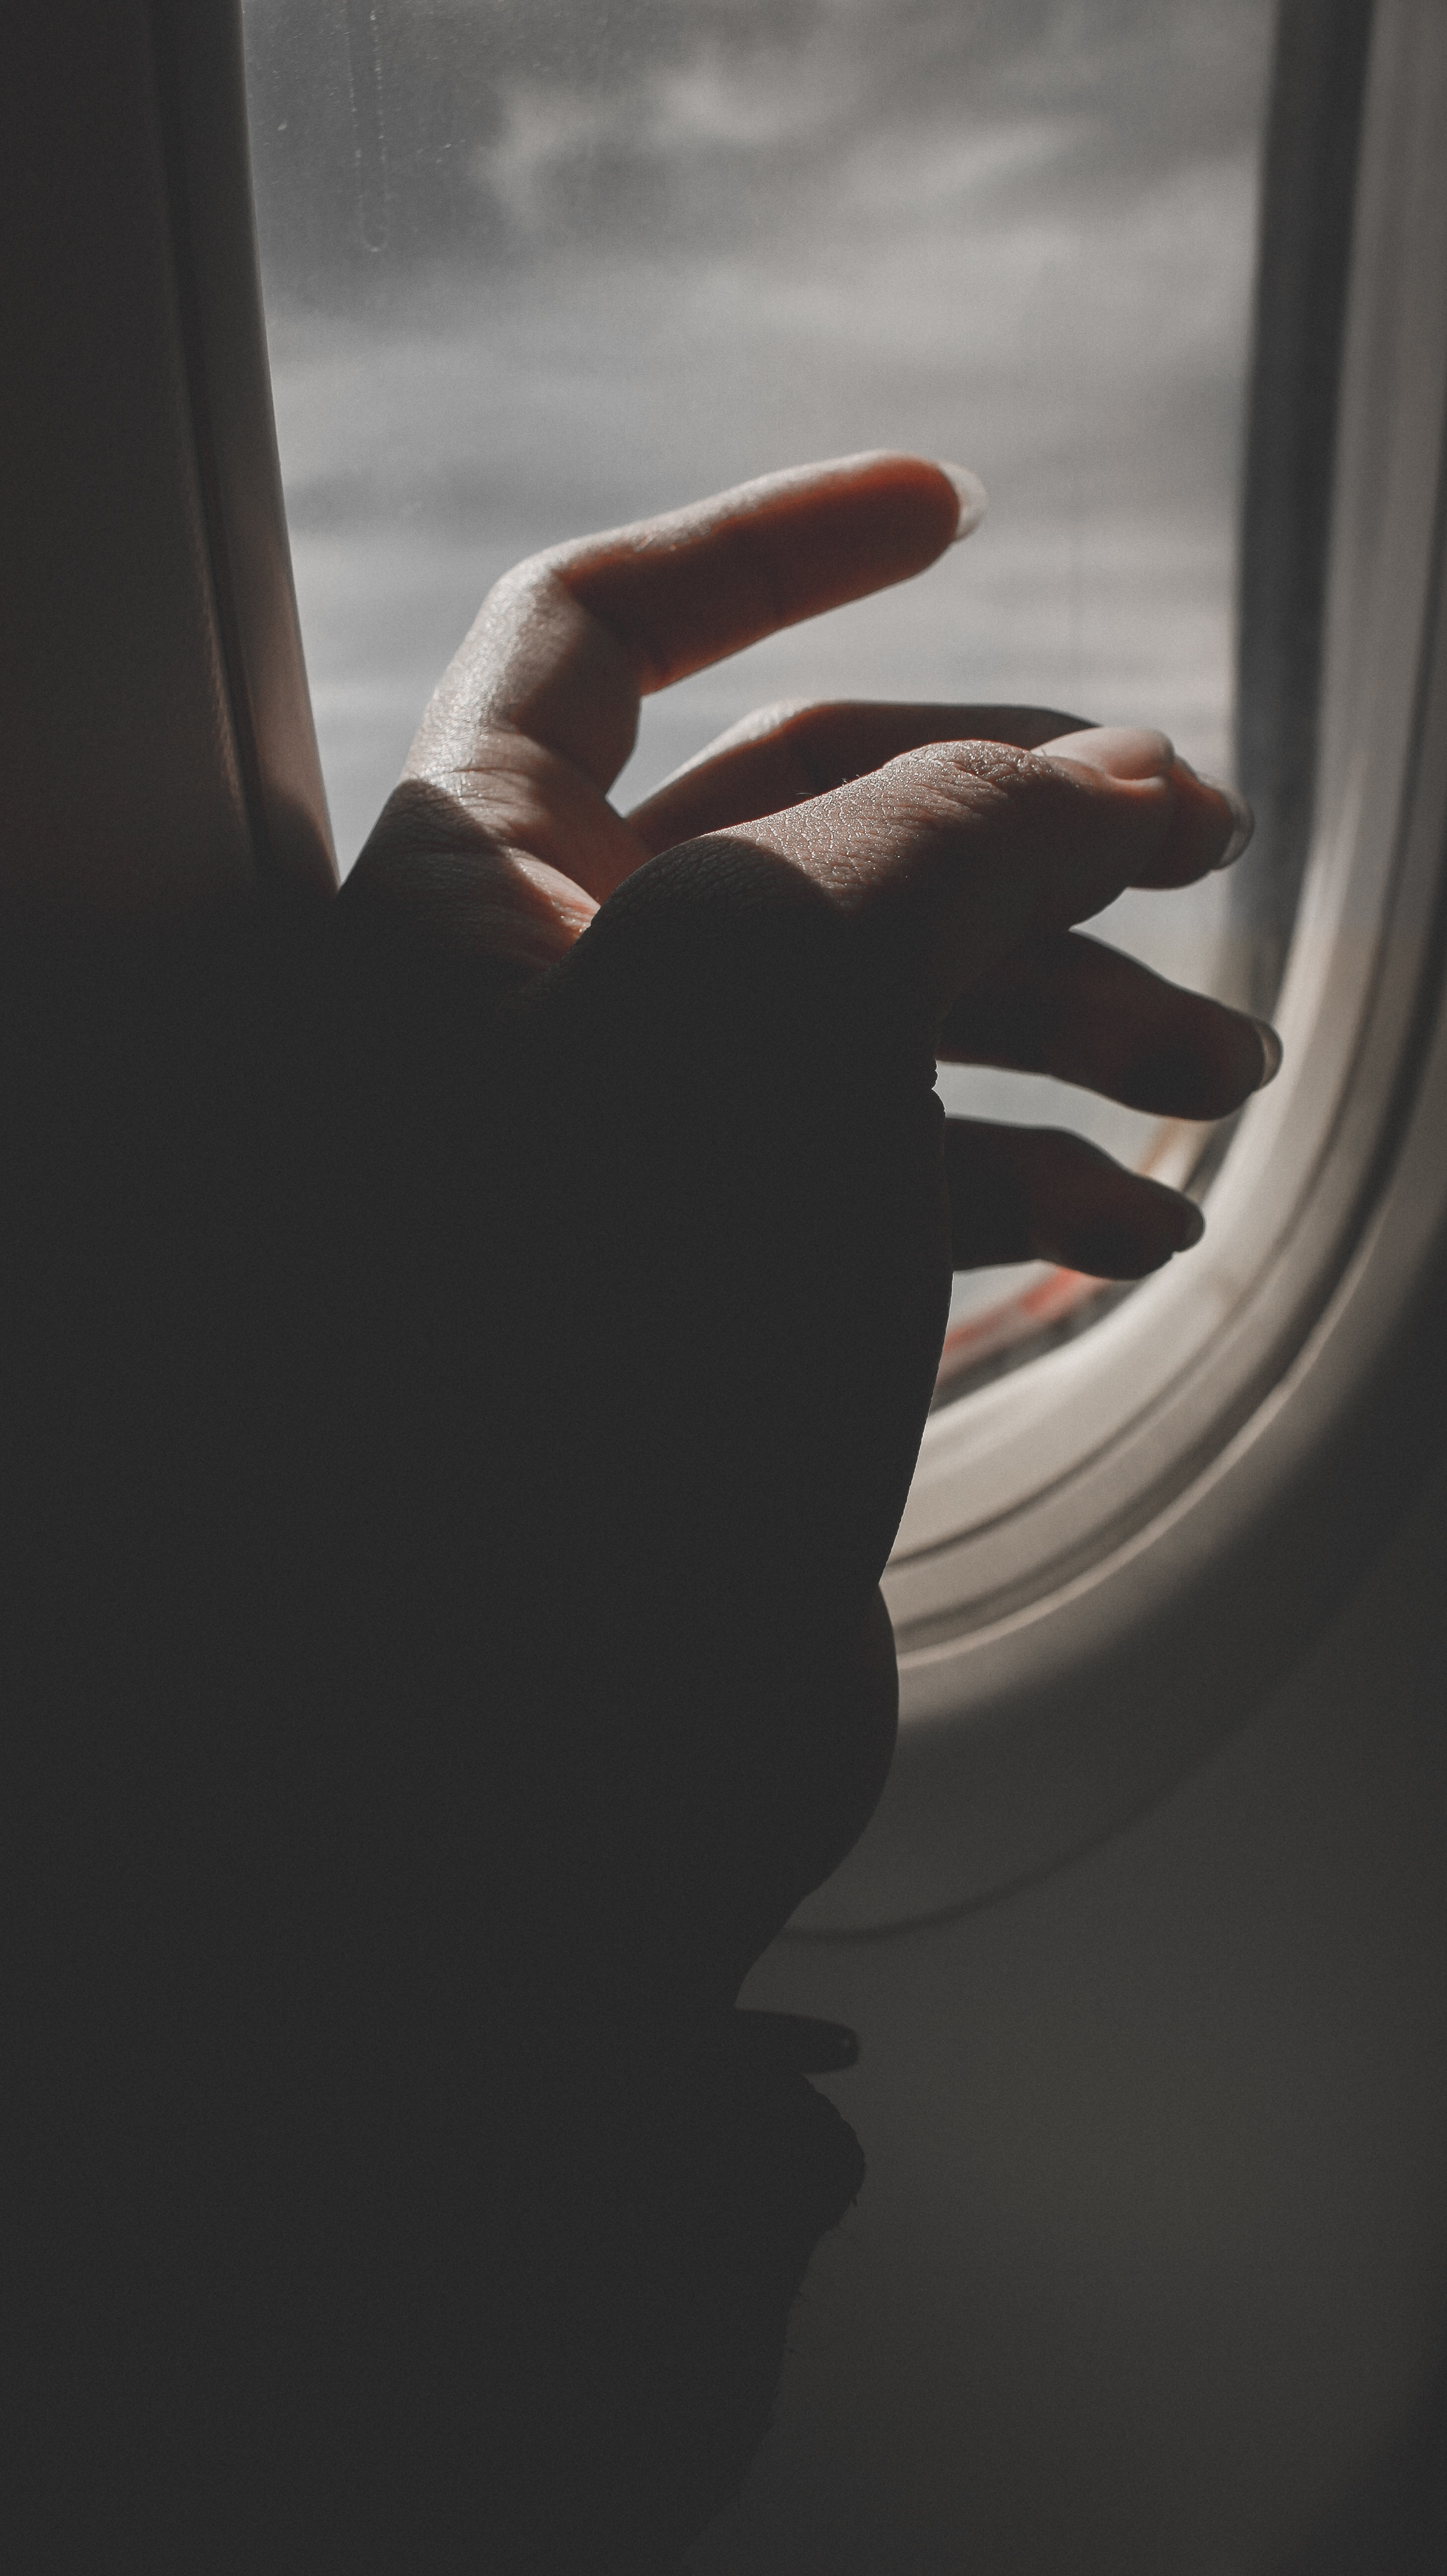 Hand By Airplane Window, Aeroplane, Aircraft, Airplane, Backlit, HQ Photo